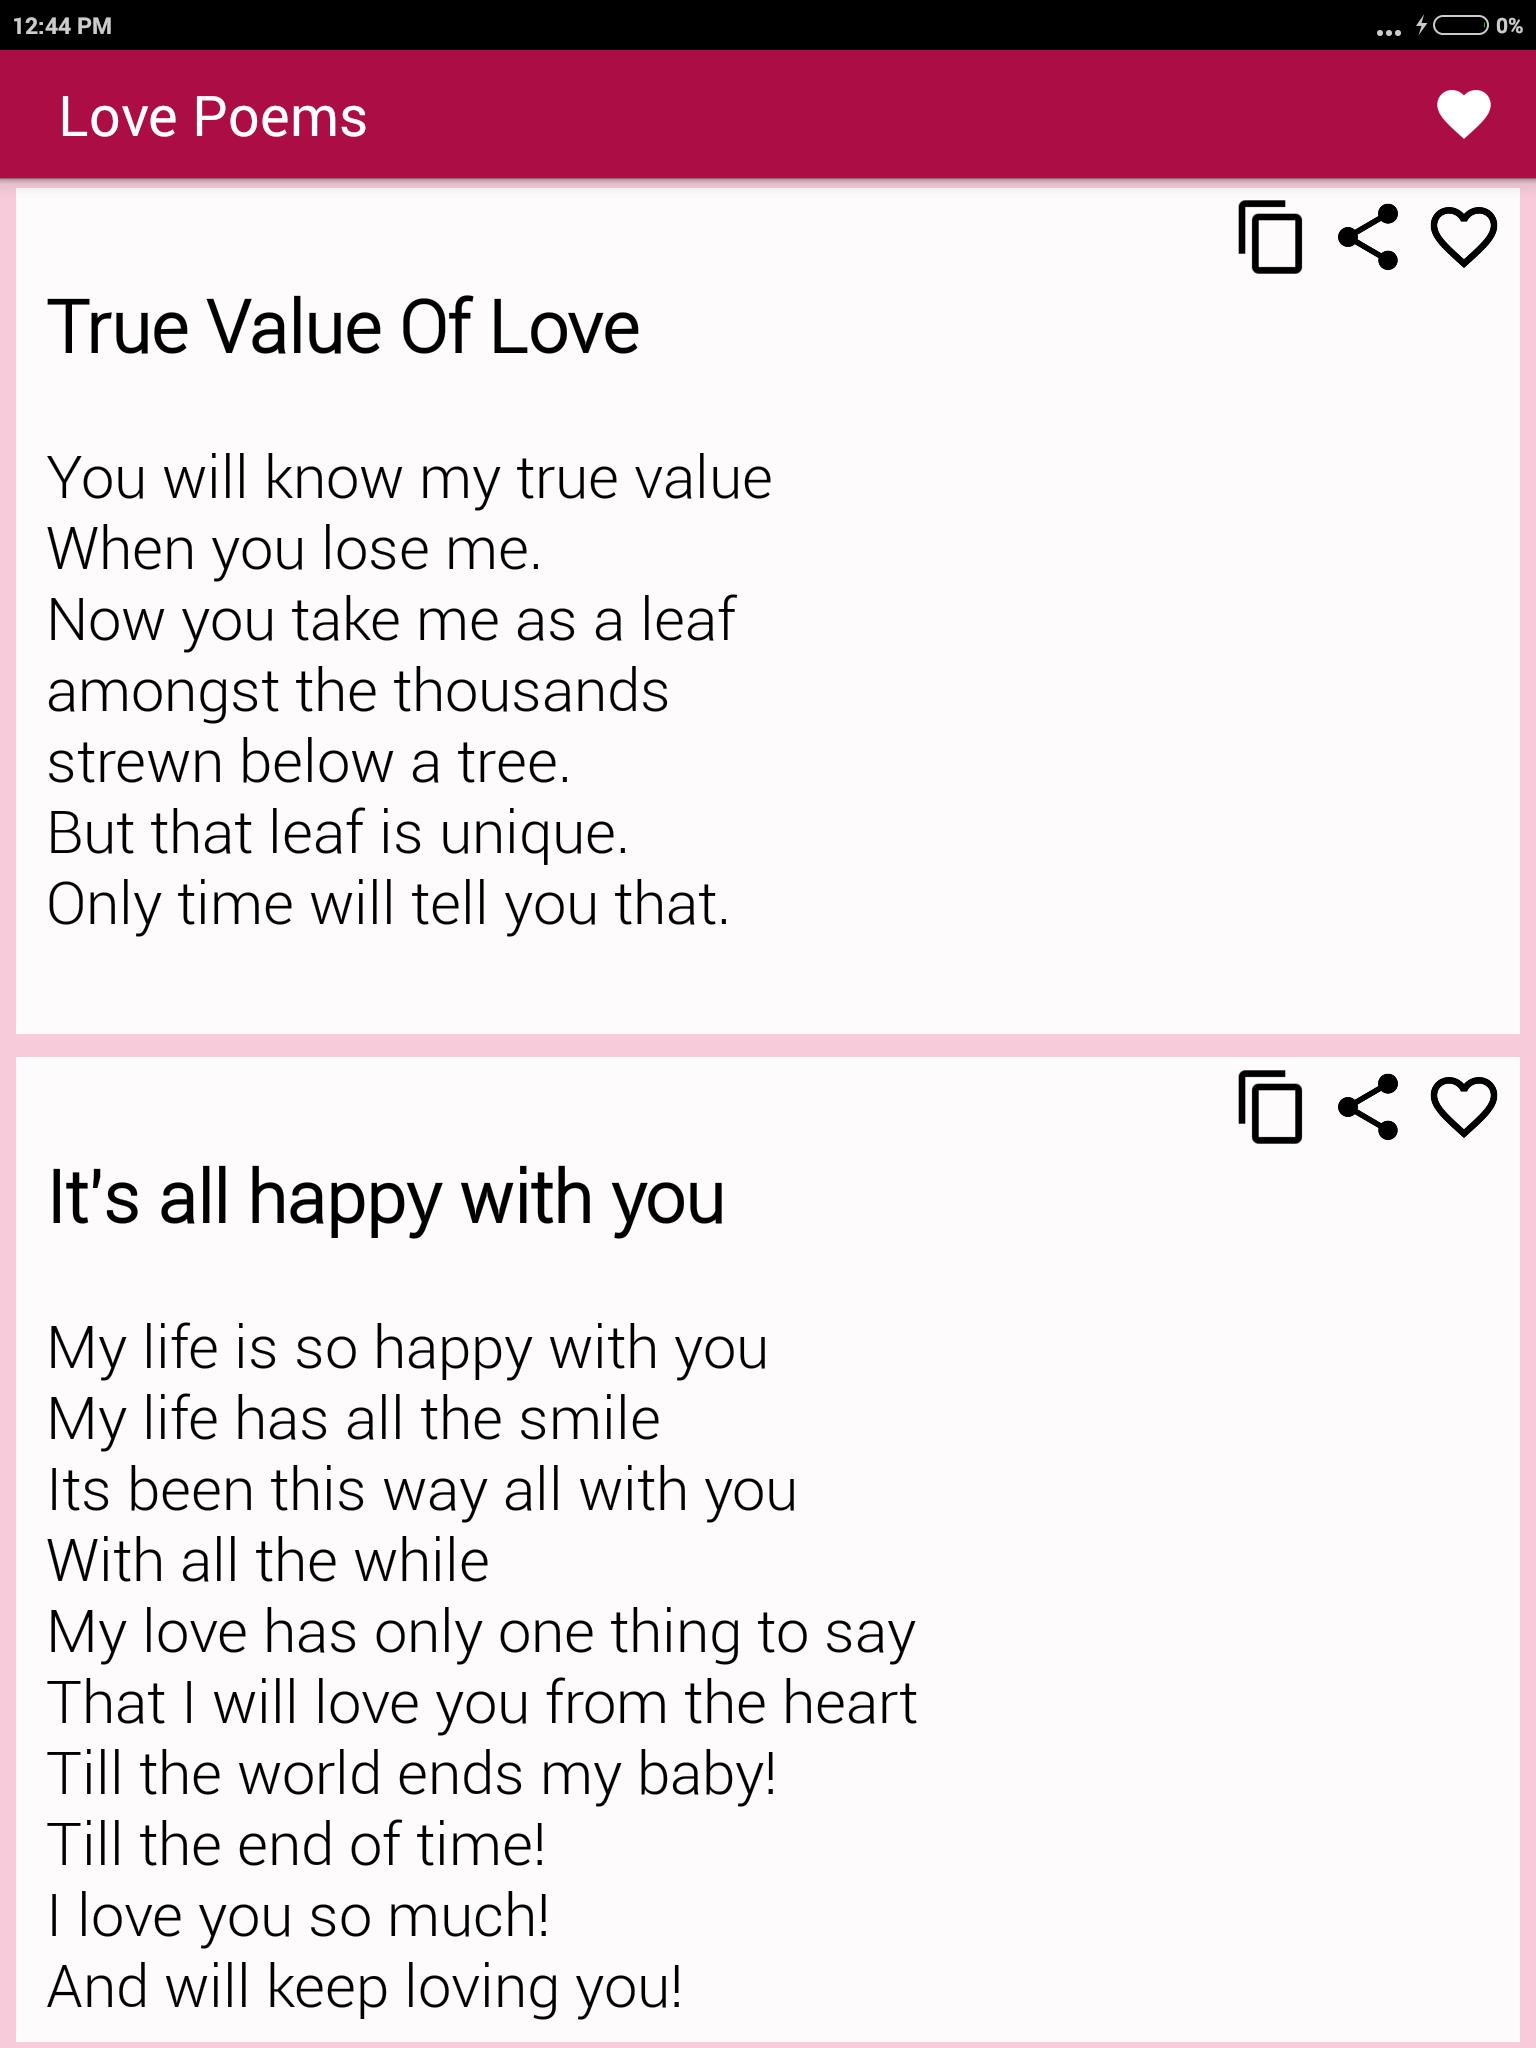 Beautiful Romantic Love Poems For Your Beloved for Android - APK